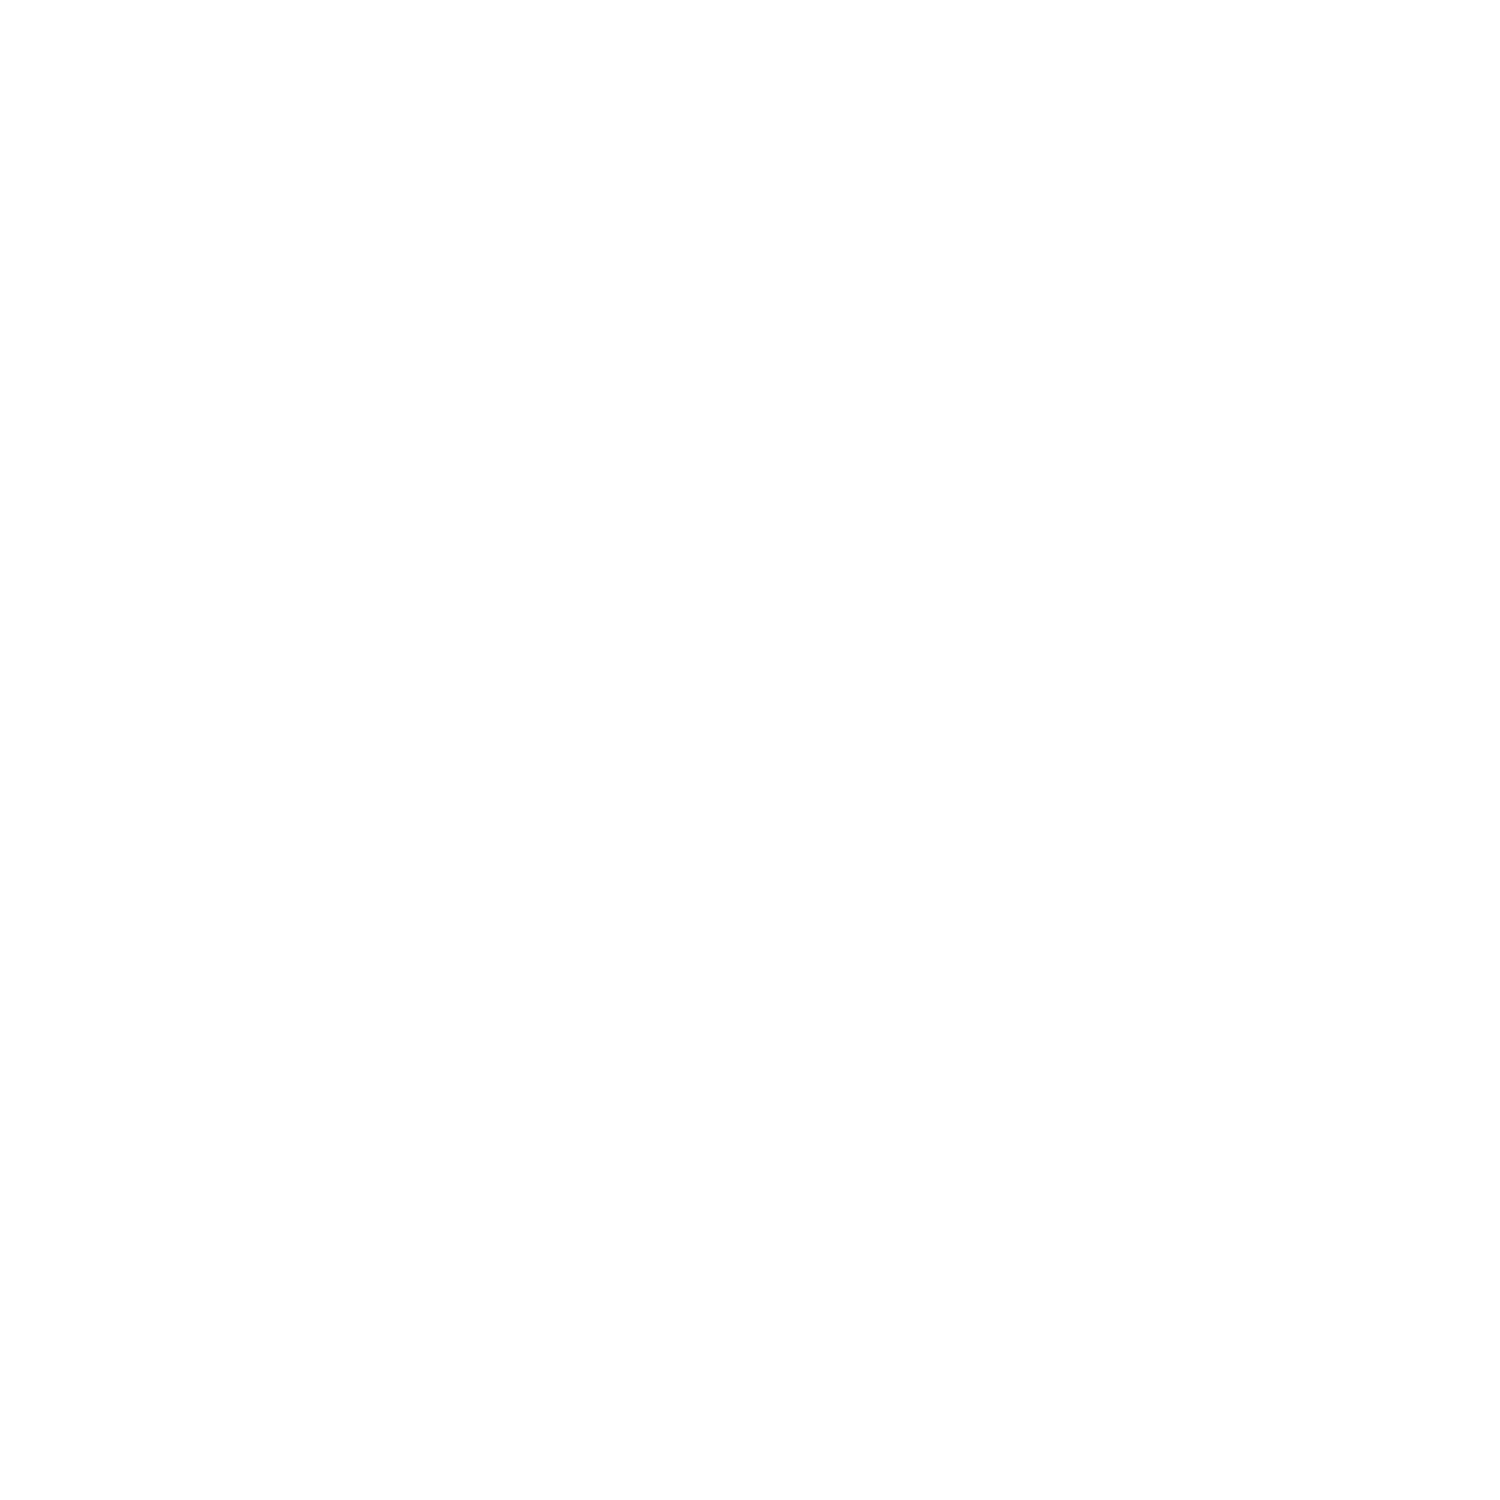 FMD Youth